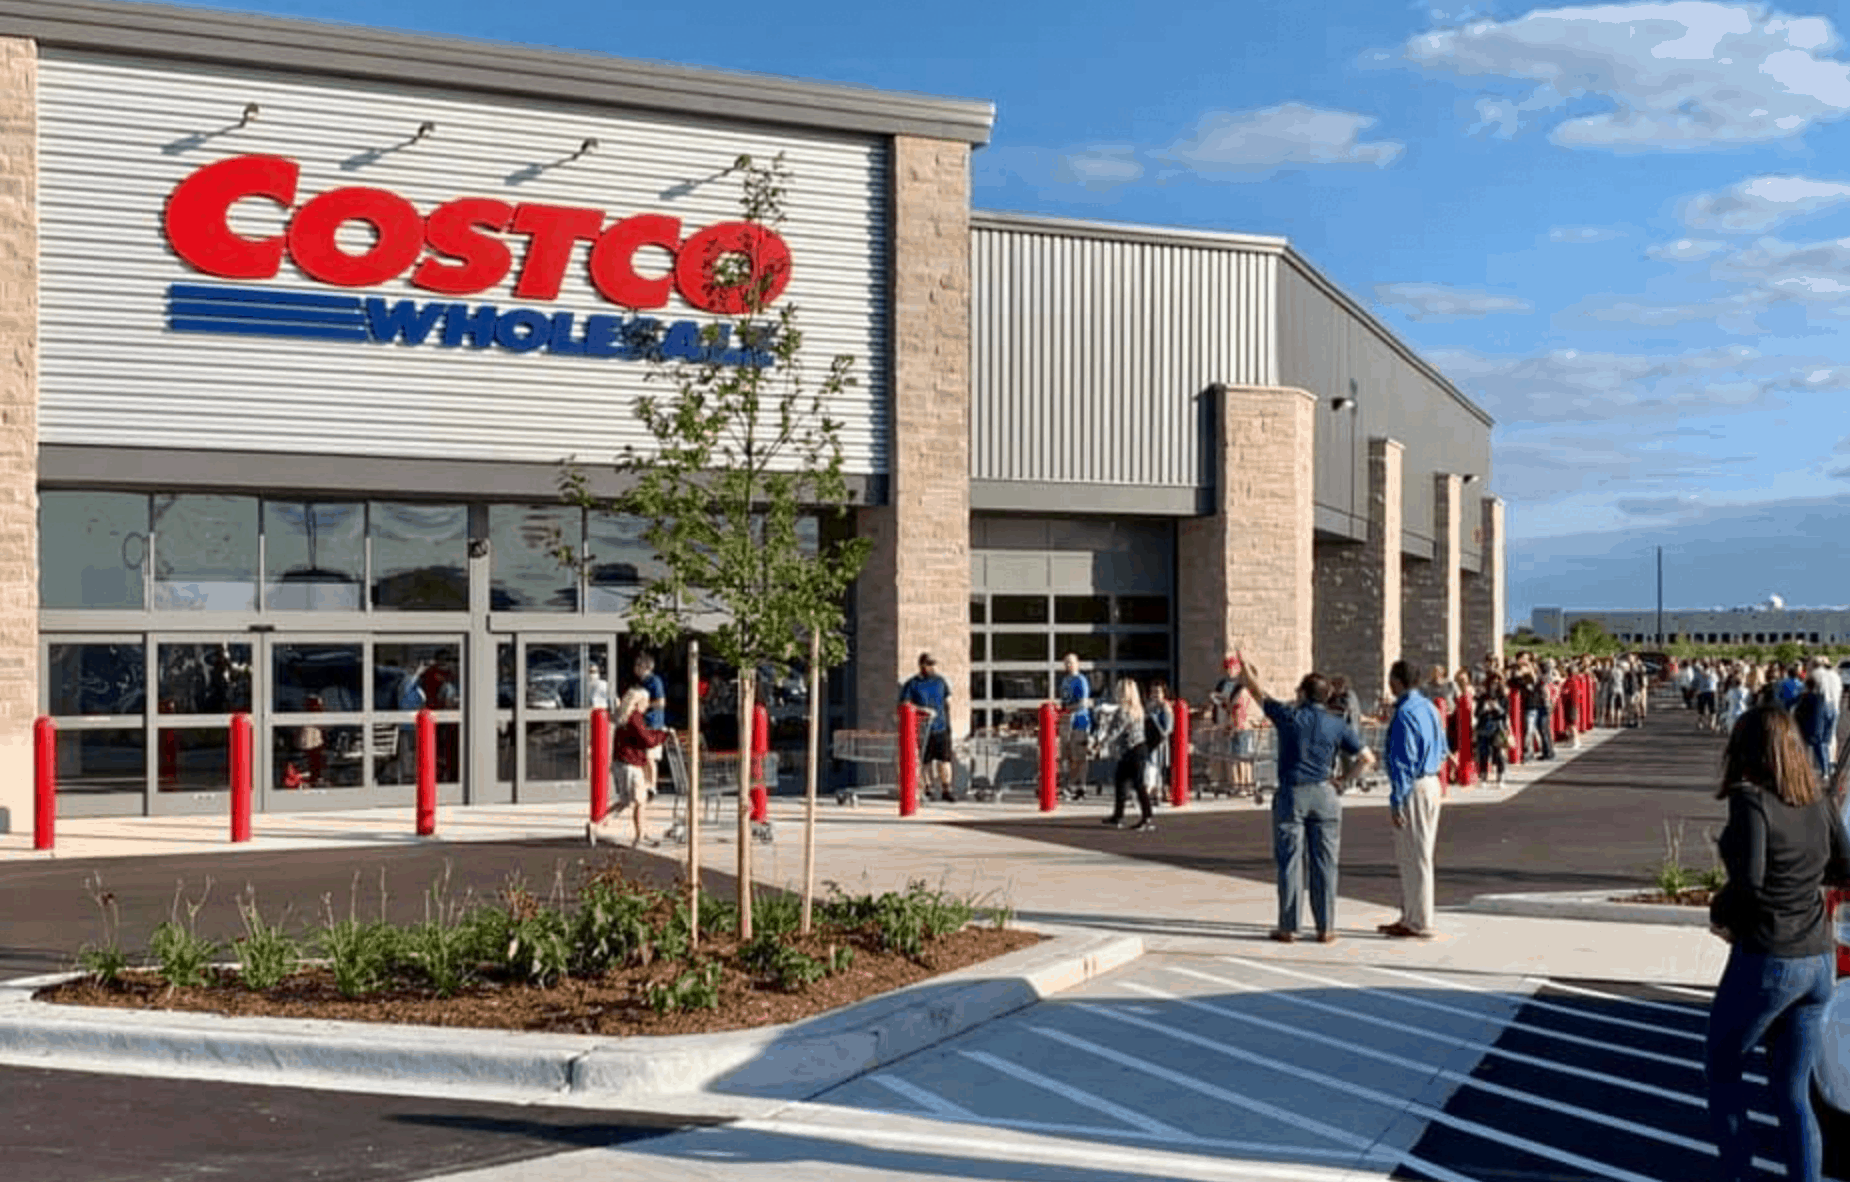 outdoor view of costco